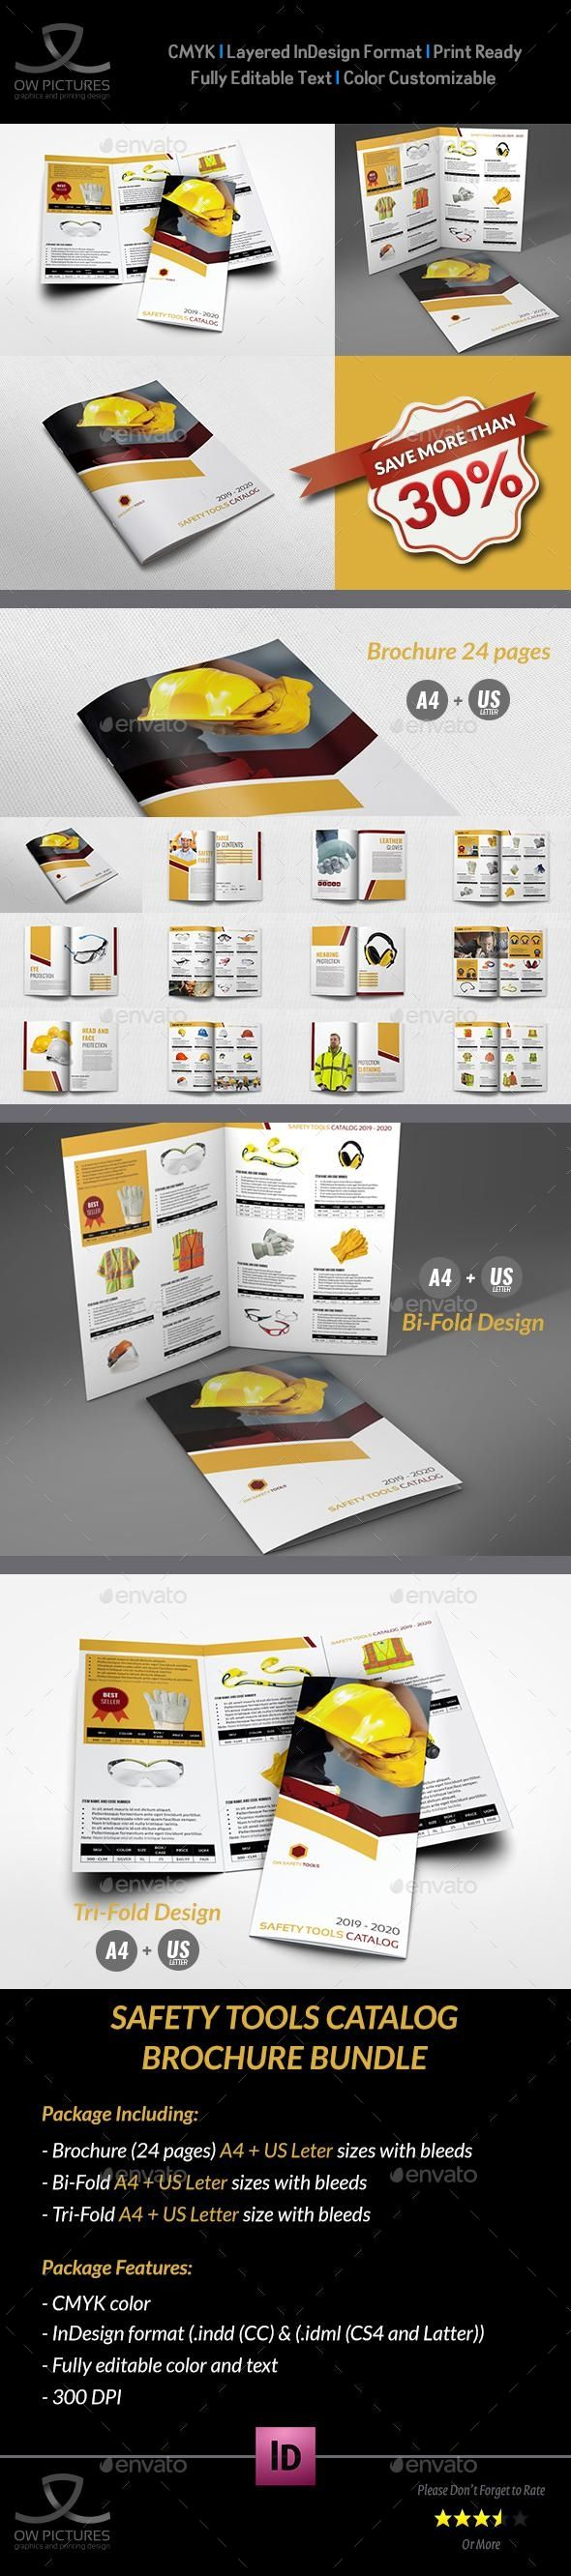 safety tools catalog brochure bundle template for 22 brochure